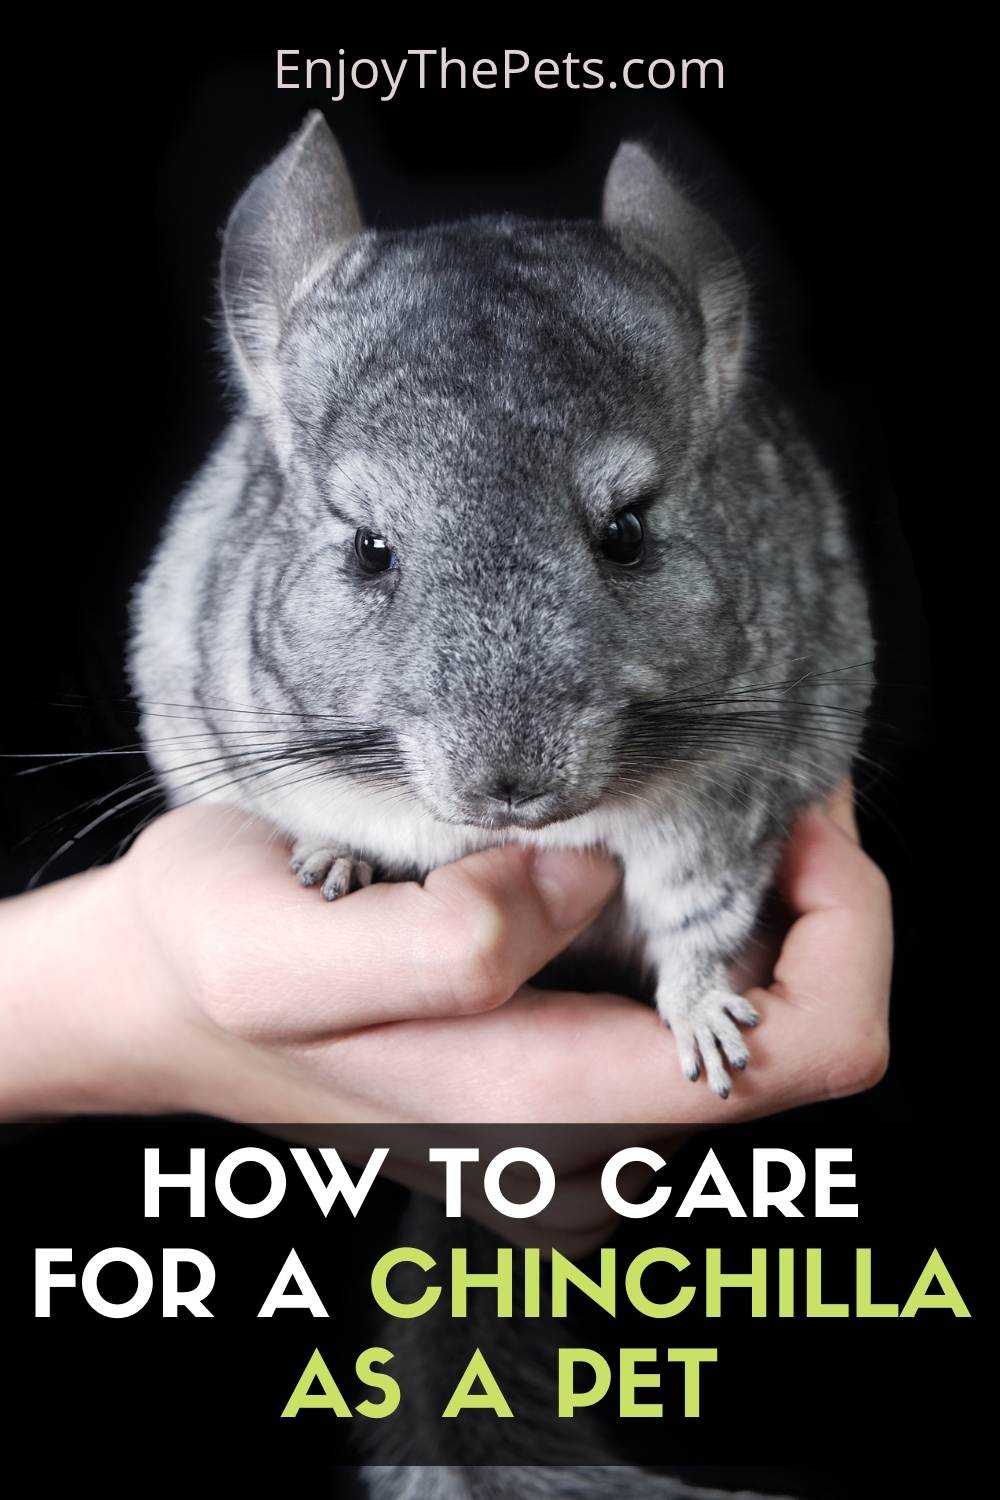 How to Care for a Chinchilla as a Pet